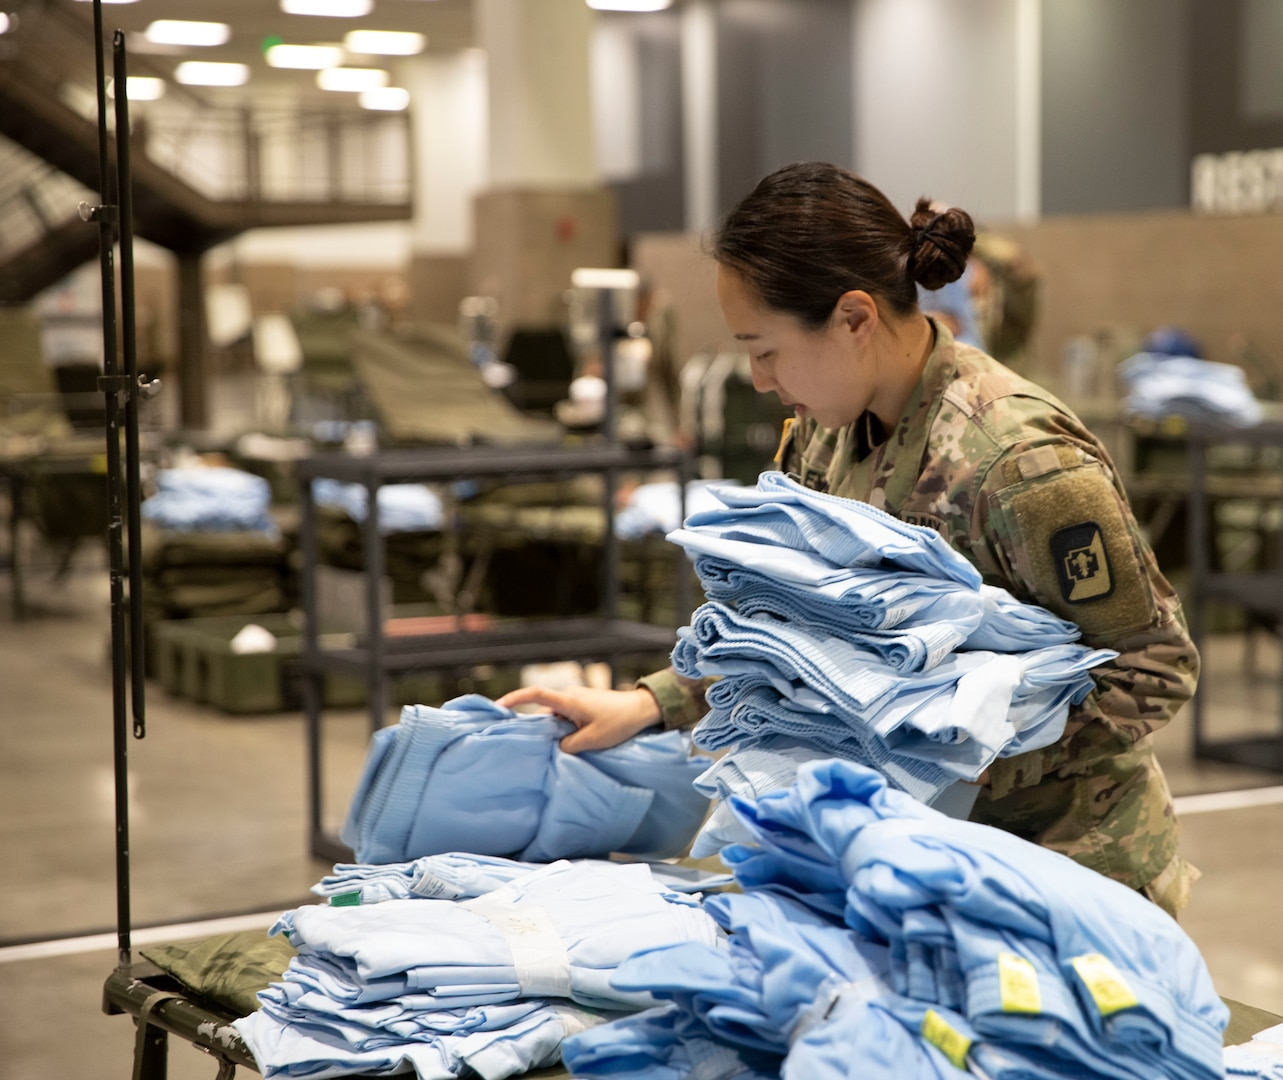 A female soldier wearing camouflage sorts through blue folded hospital gowns.